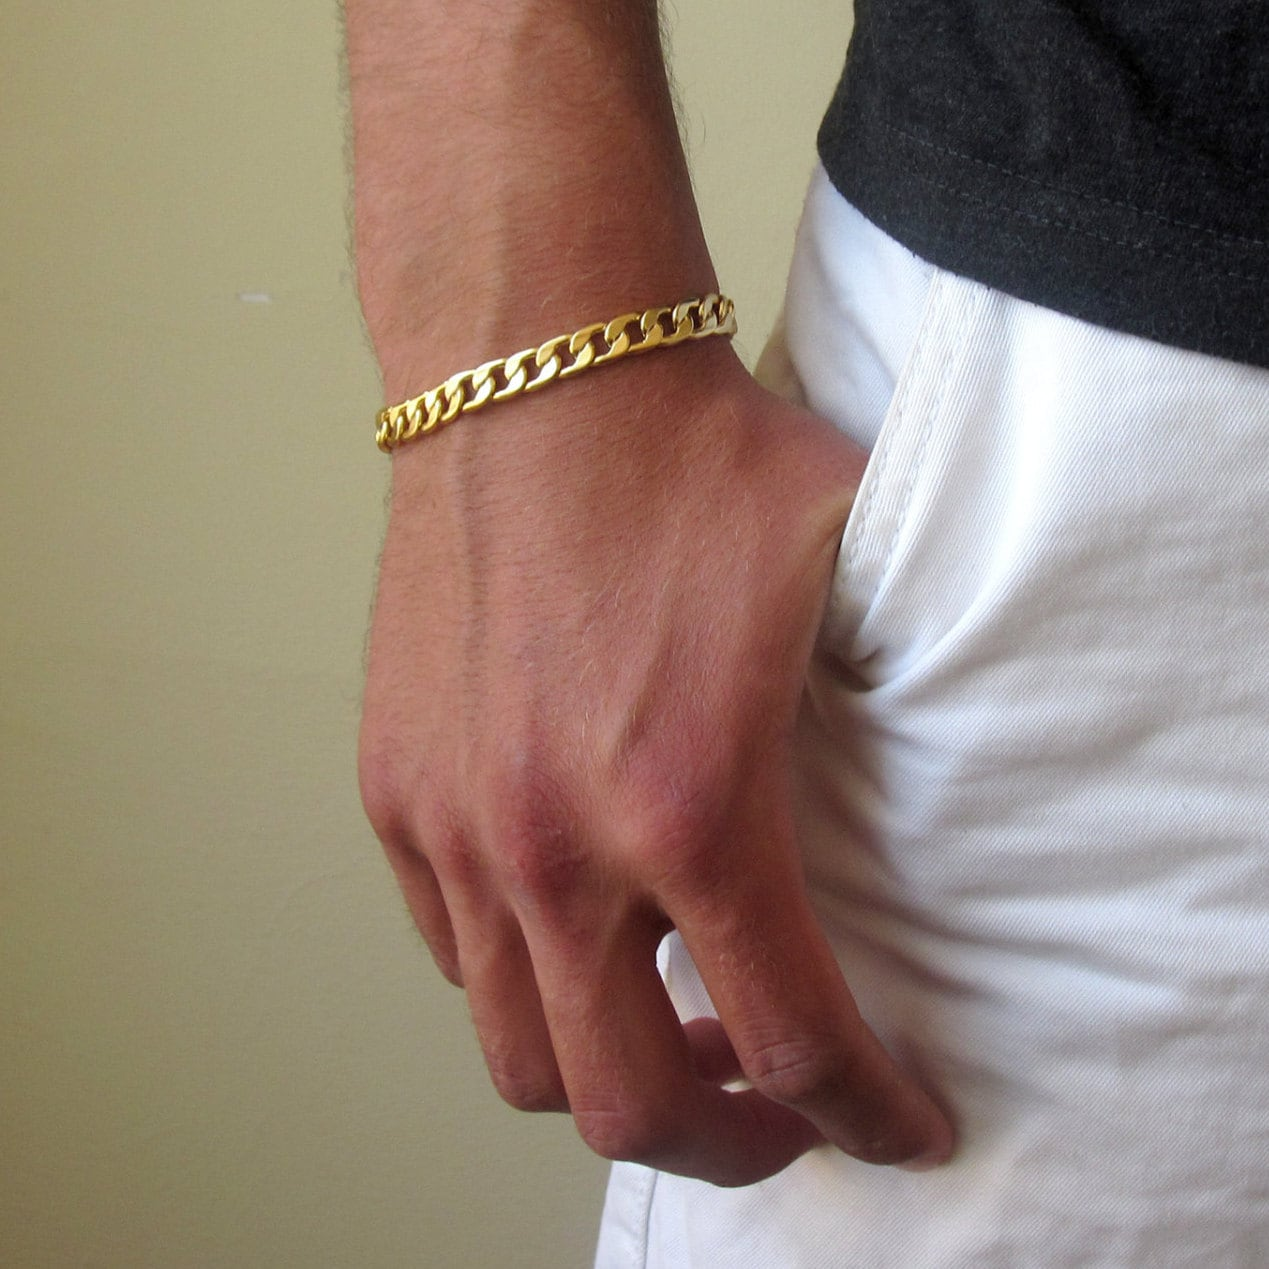 mens gold bracelet mens bracelet gold chain bracelet. Black Bedroom Furniture Sets. Home Design Ideas